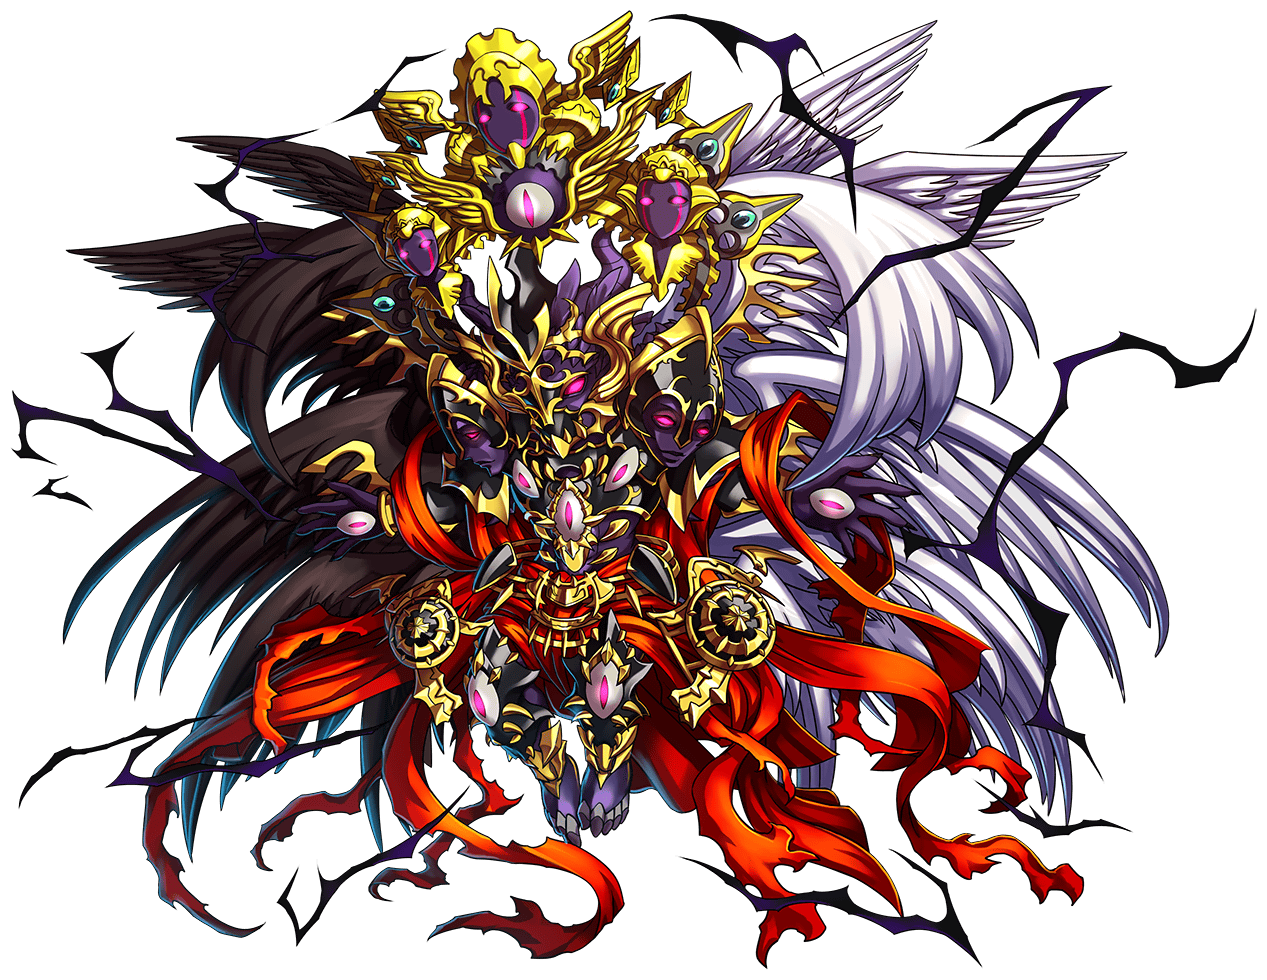 kajah azael and melchio somehow related bravefrontier